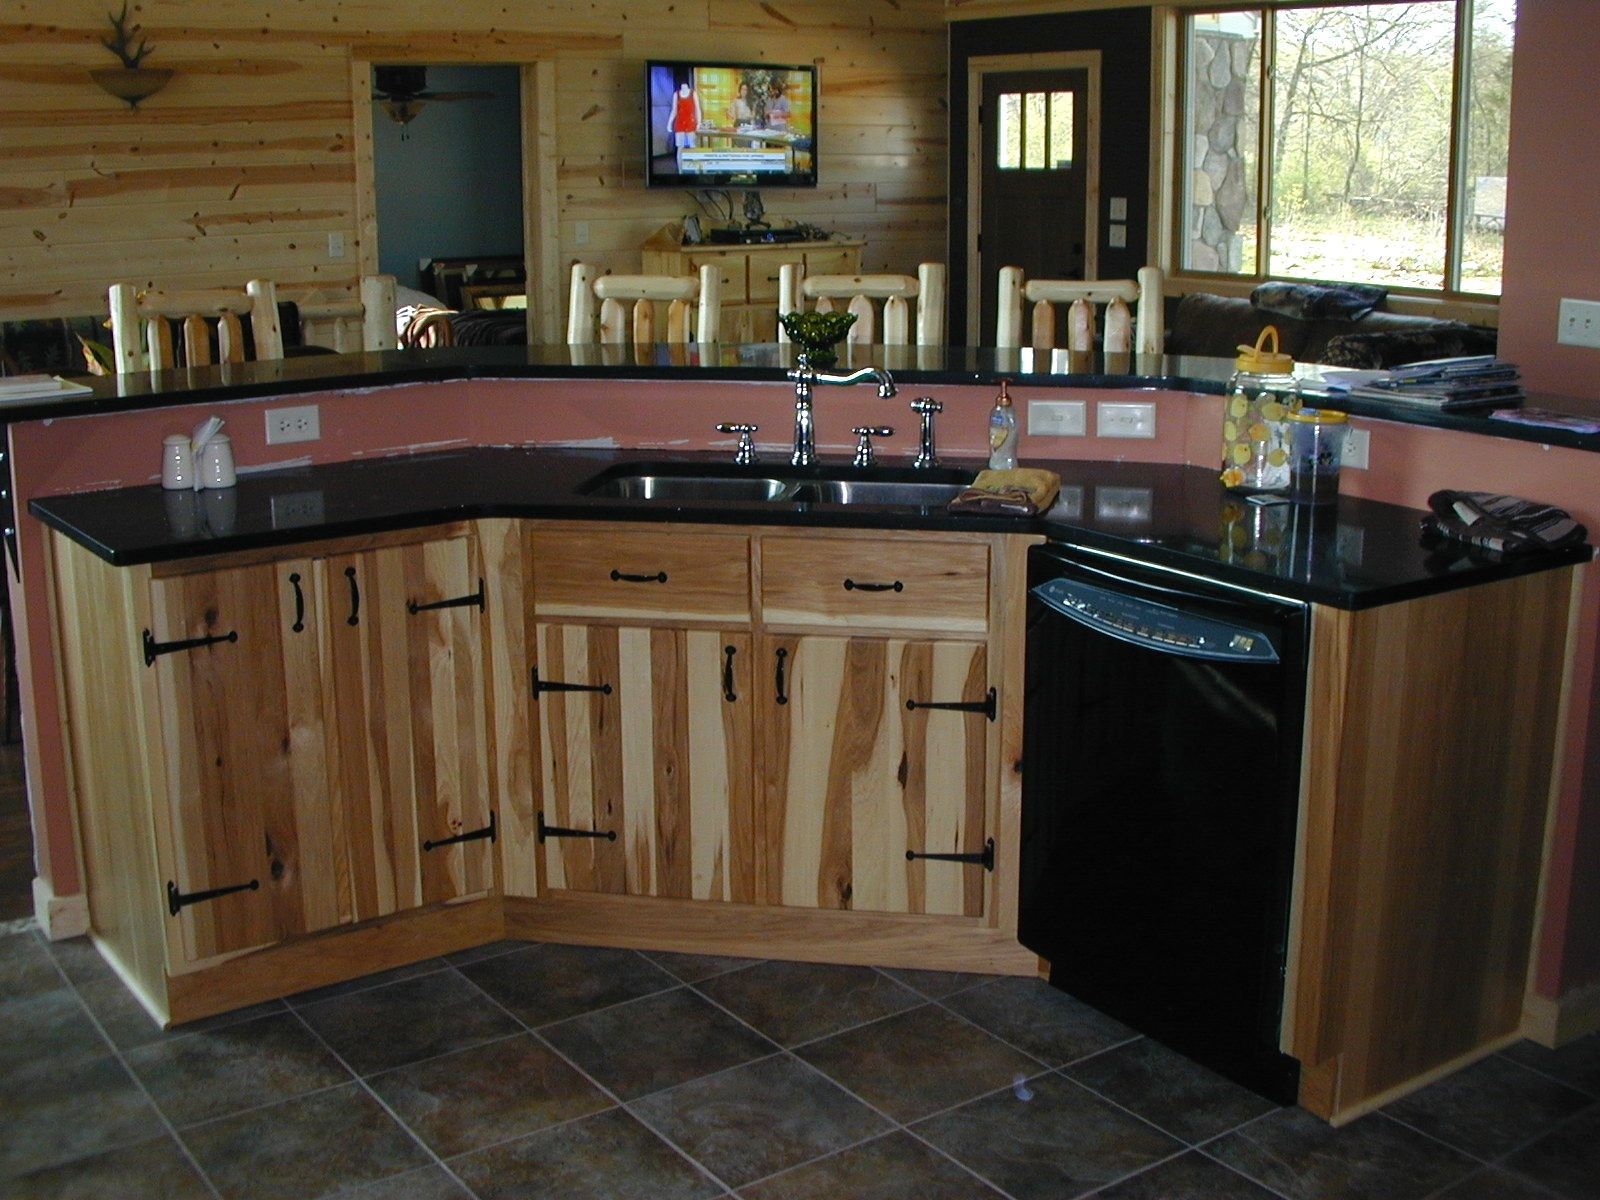 Handmade hickory kitchen and utility cabinets by the plane edge llc - Custom made kitchen cabinets ...